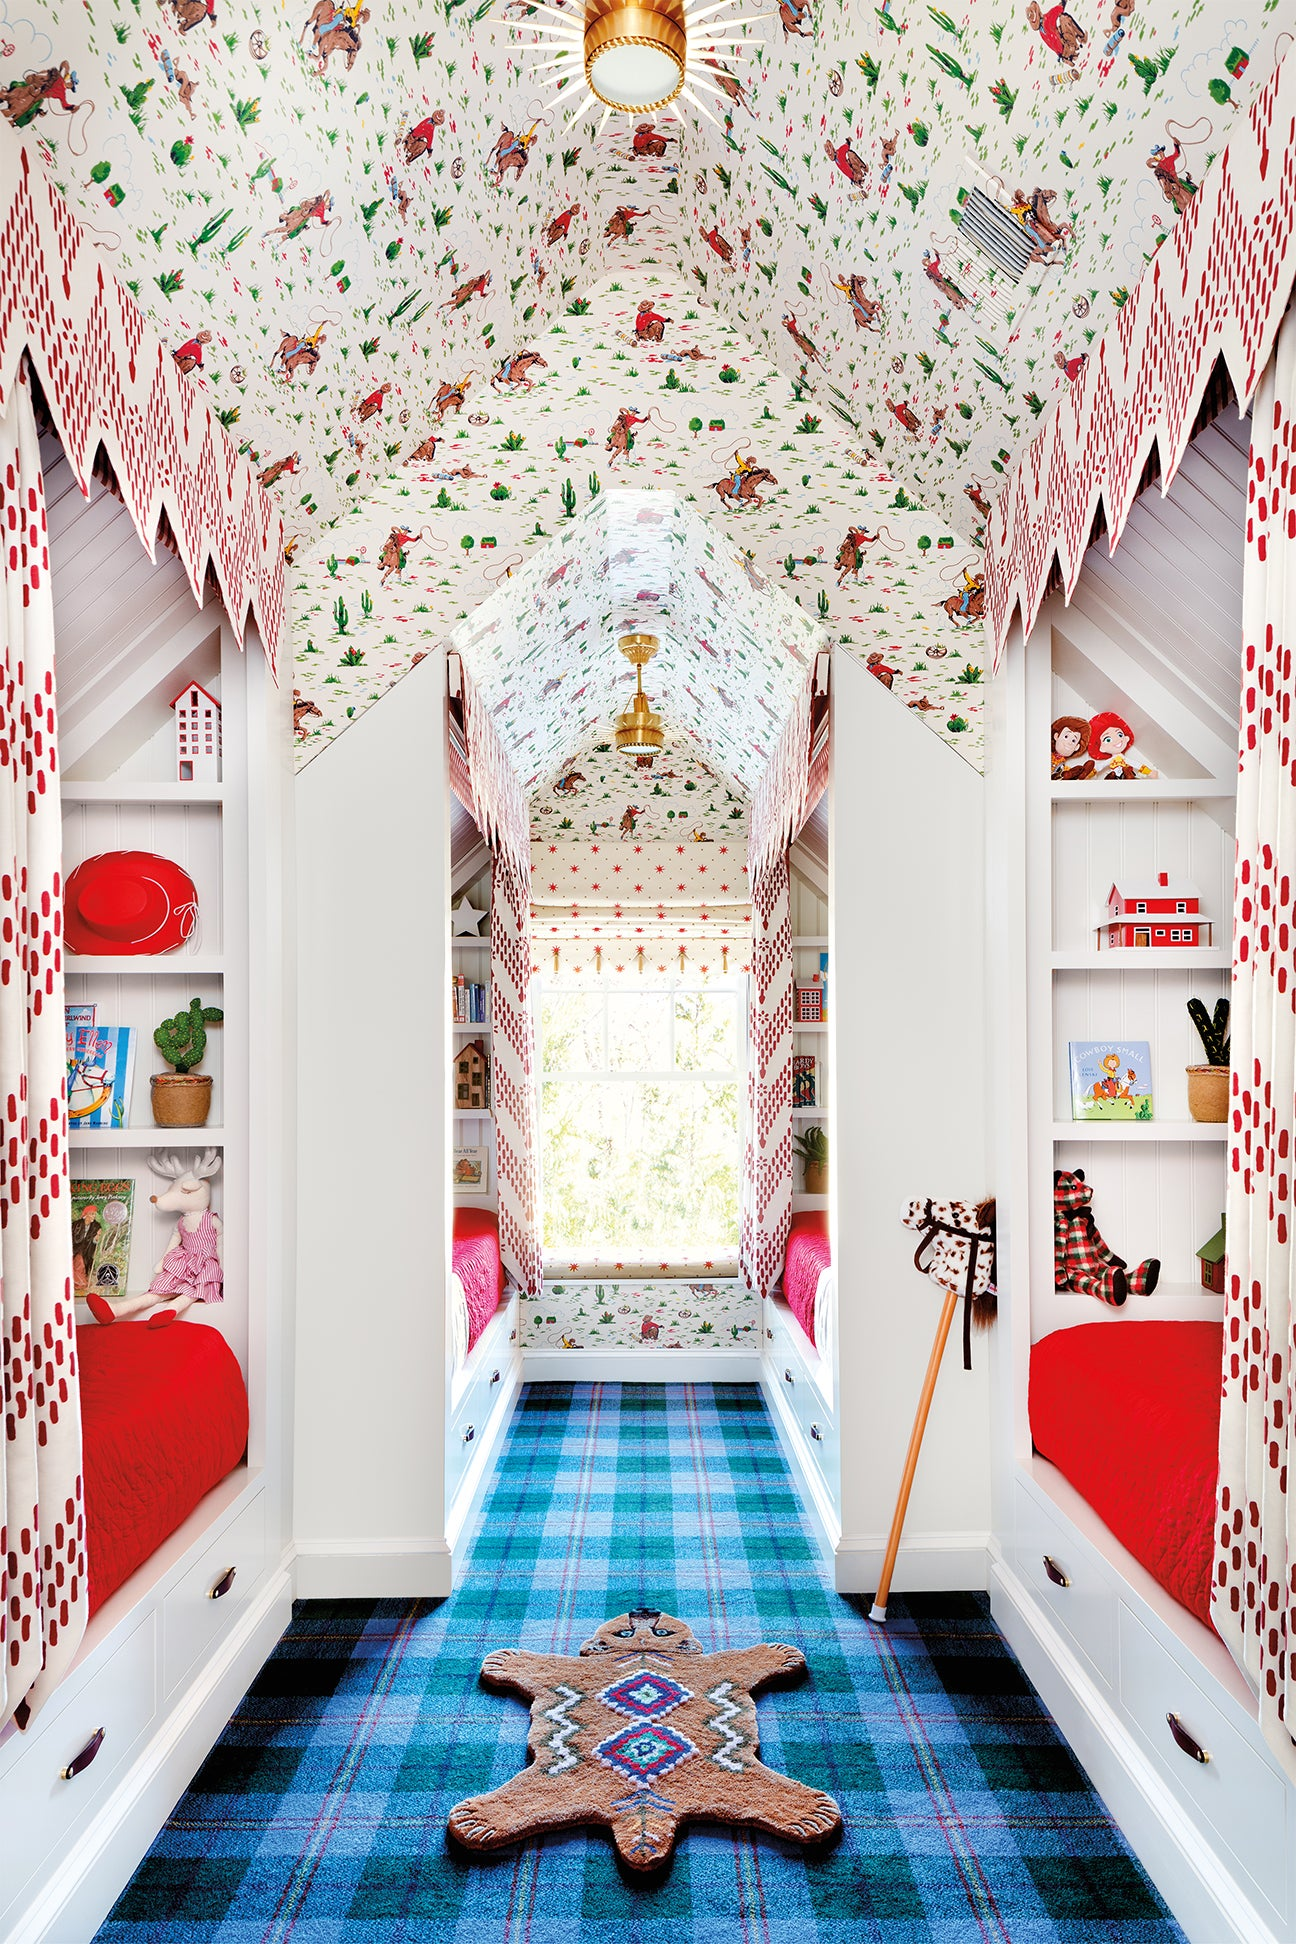 Kids room with built-in bunk and wallpapered ceiling